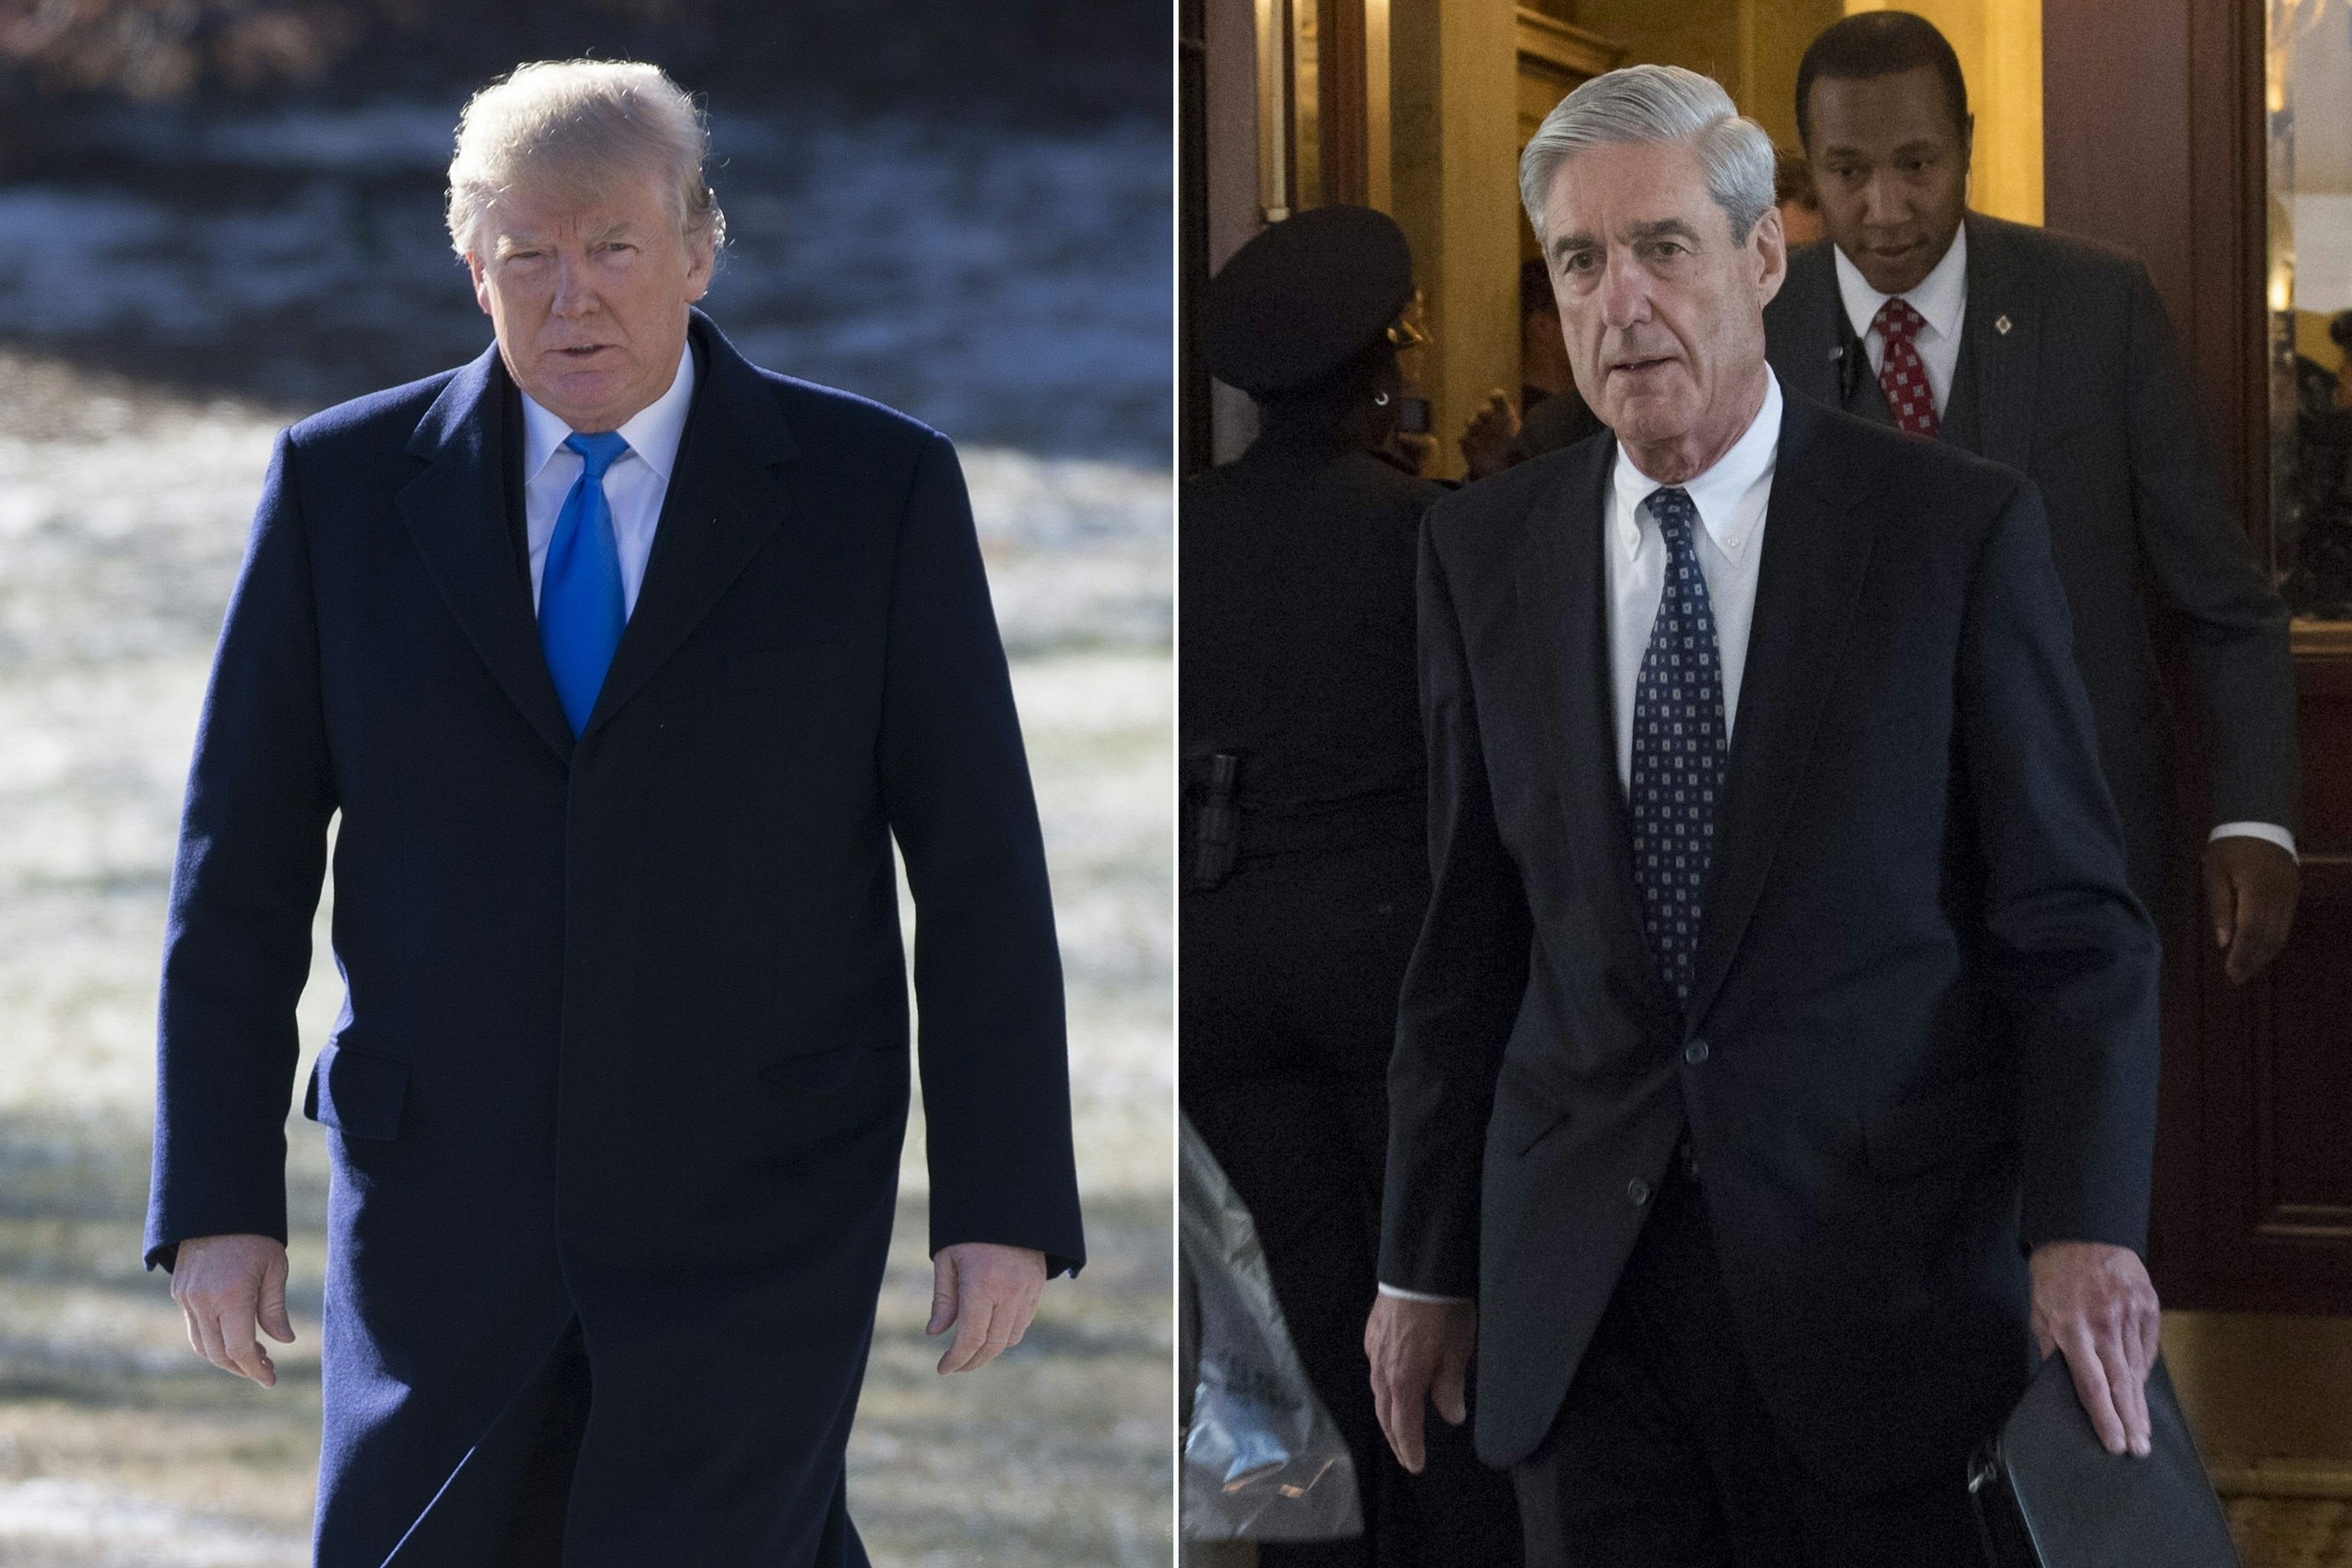 Your guide to what you can and can't expect from Robert Mueller's final report on Trump, Russia investigations